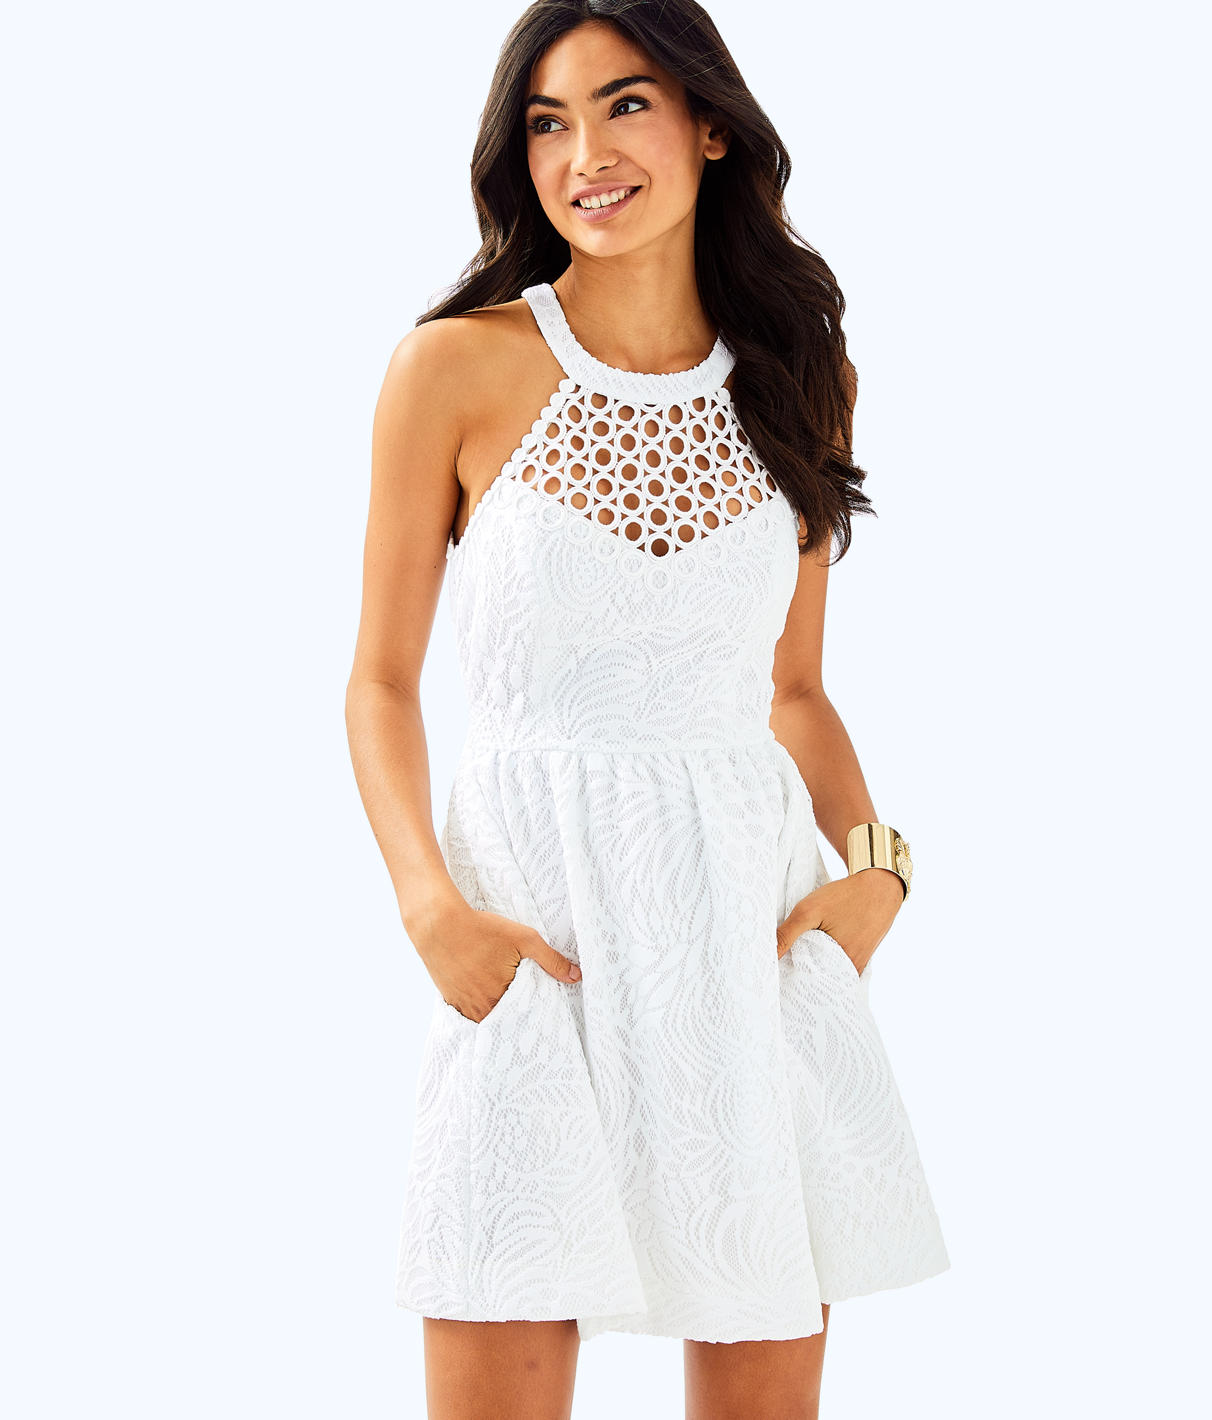 Lilly Pulitzer Lilly Pulitzer Womens Kinley Dress